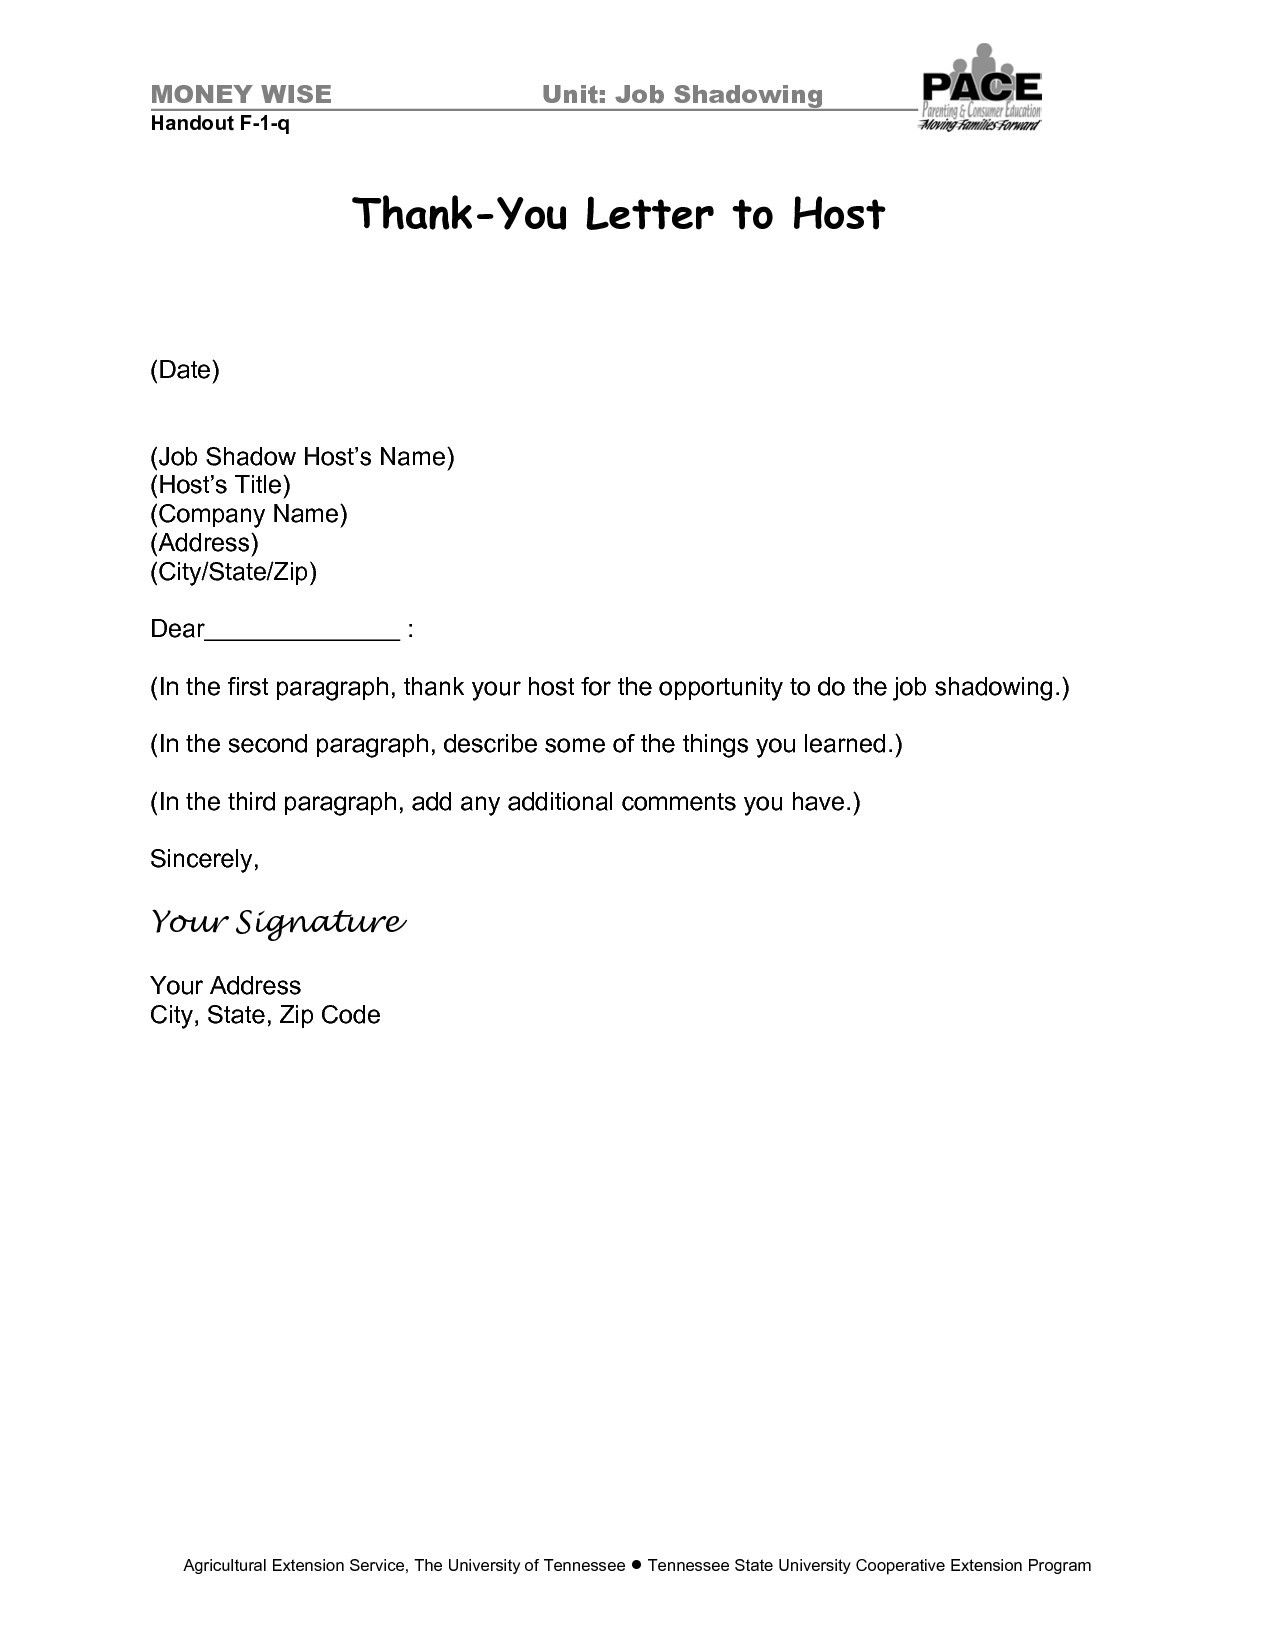 You Can See This Valid Thank You Letter Format For Job Shadow At